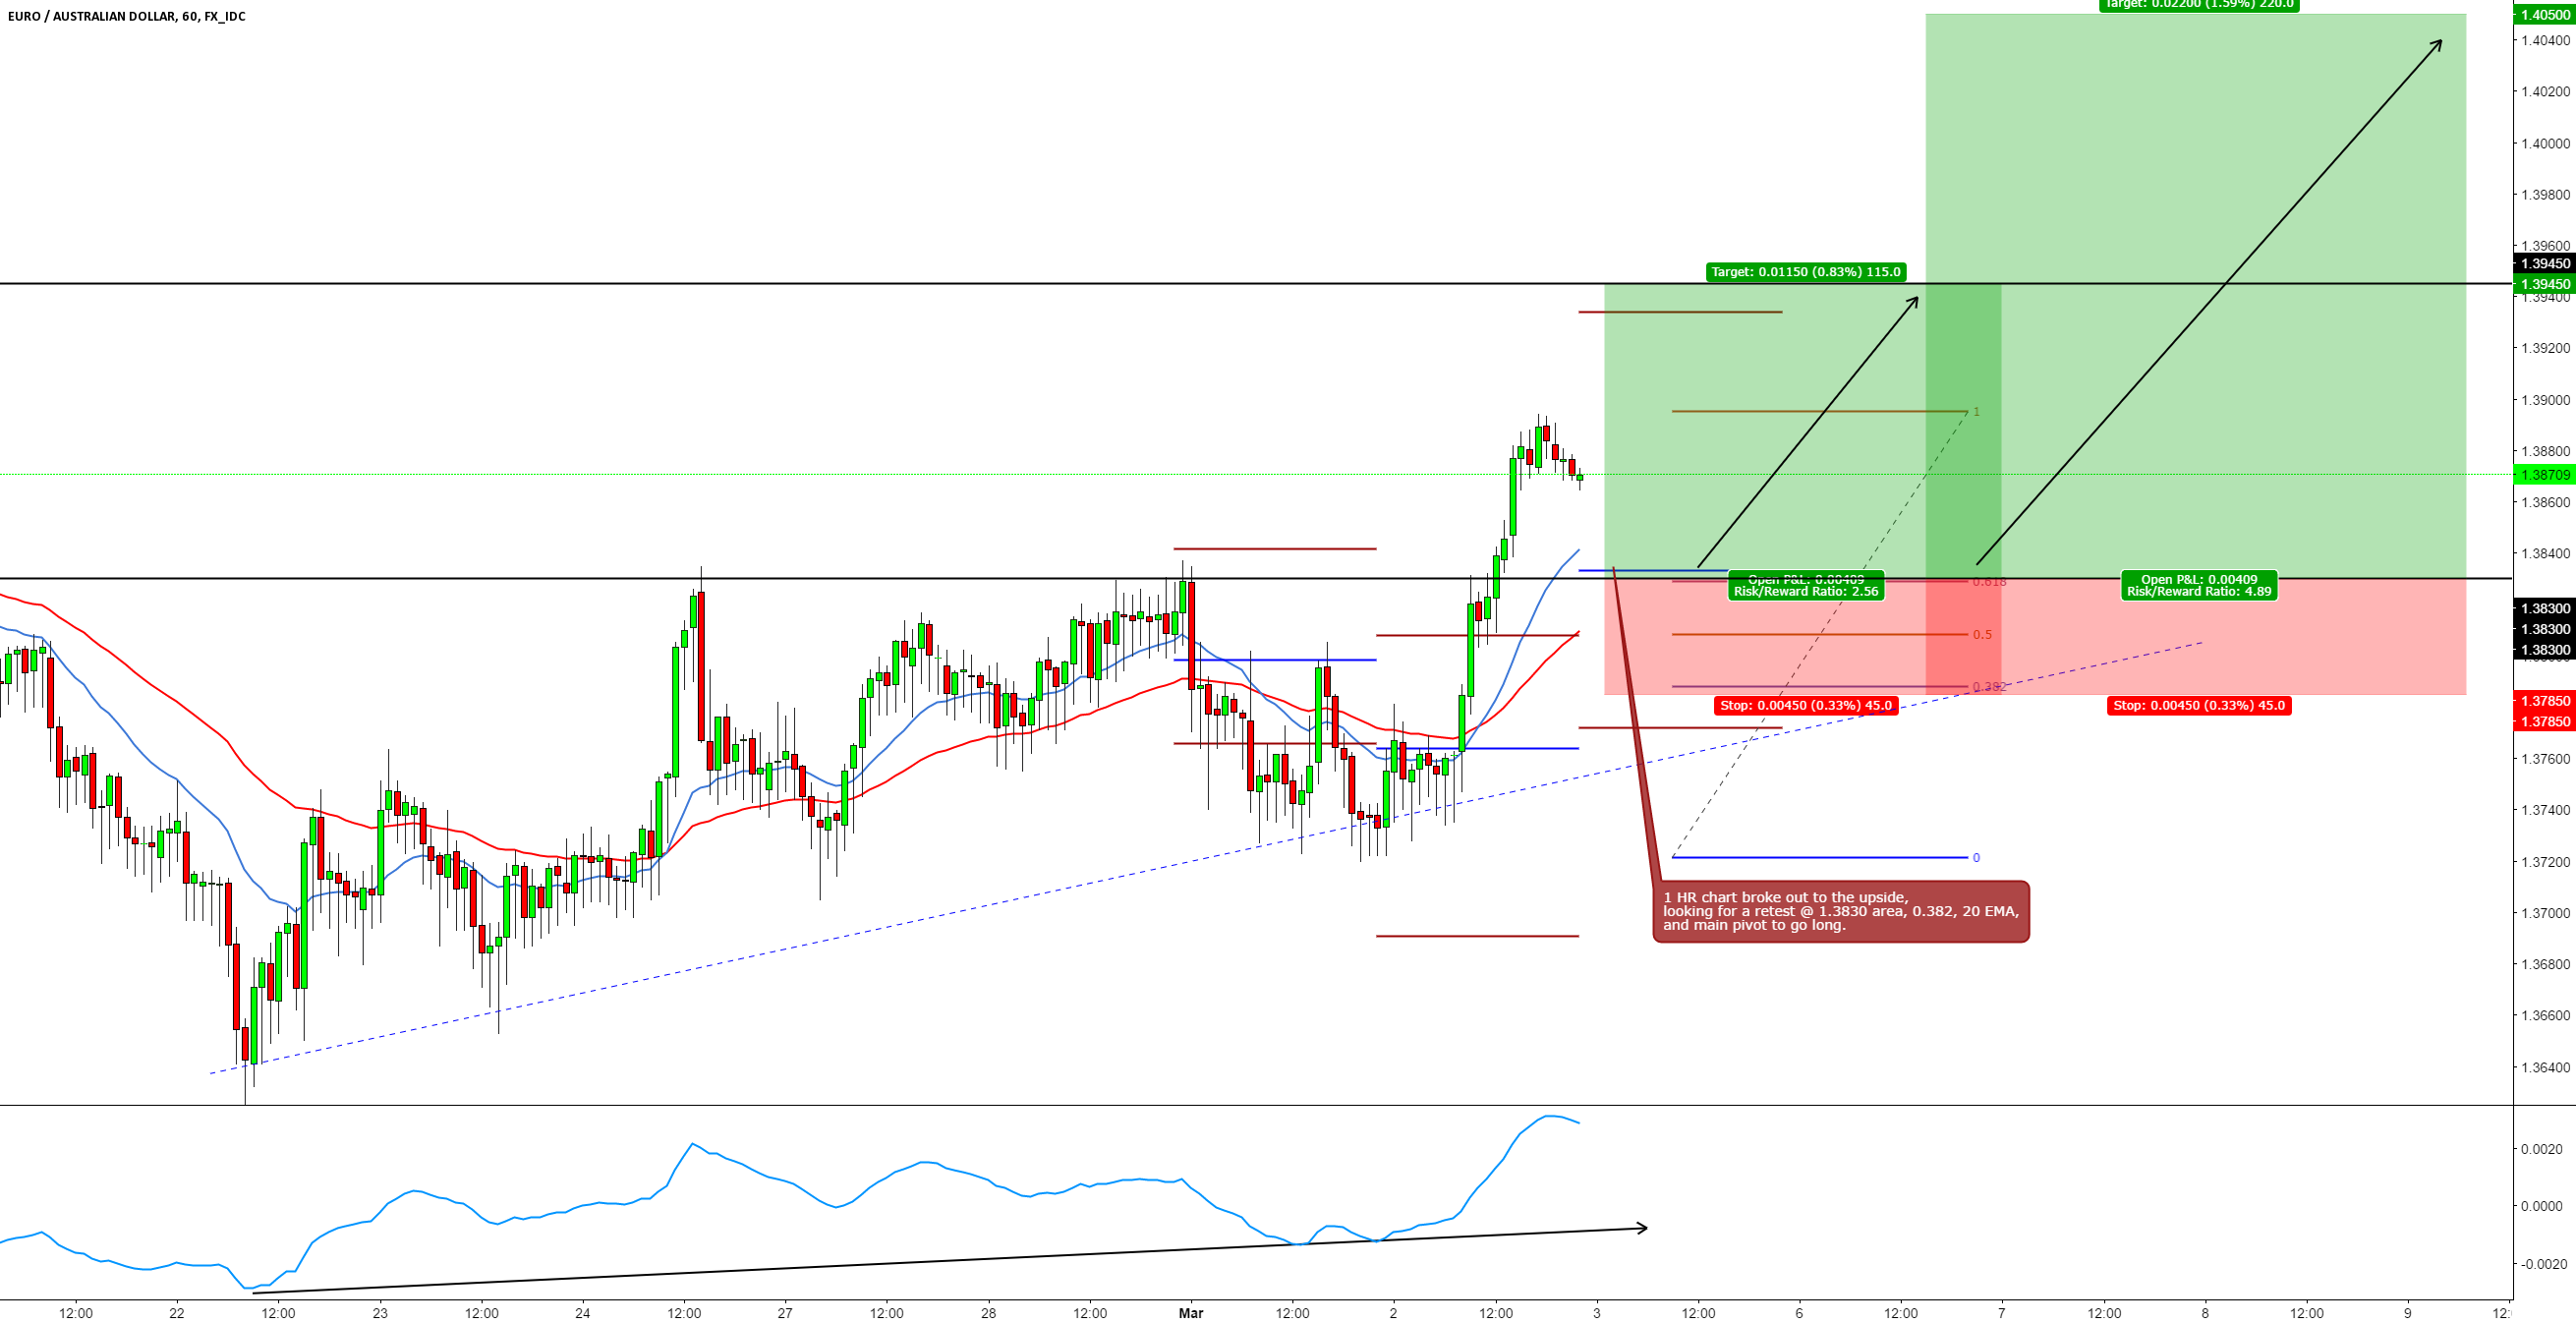 EURAUD LONG 1 HR BREAK AND RETEST TRADE SETUP